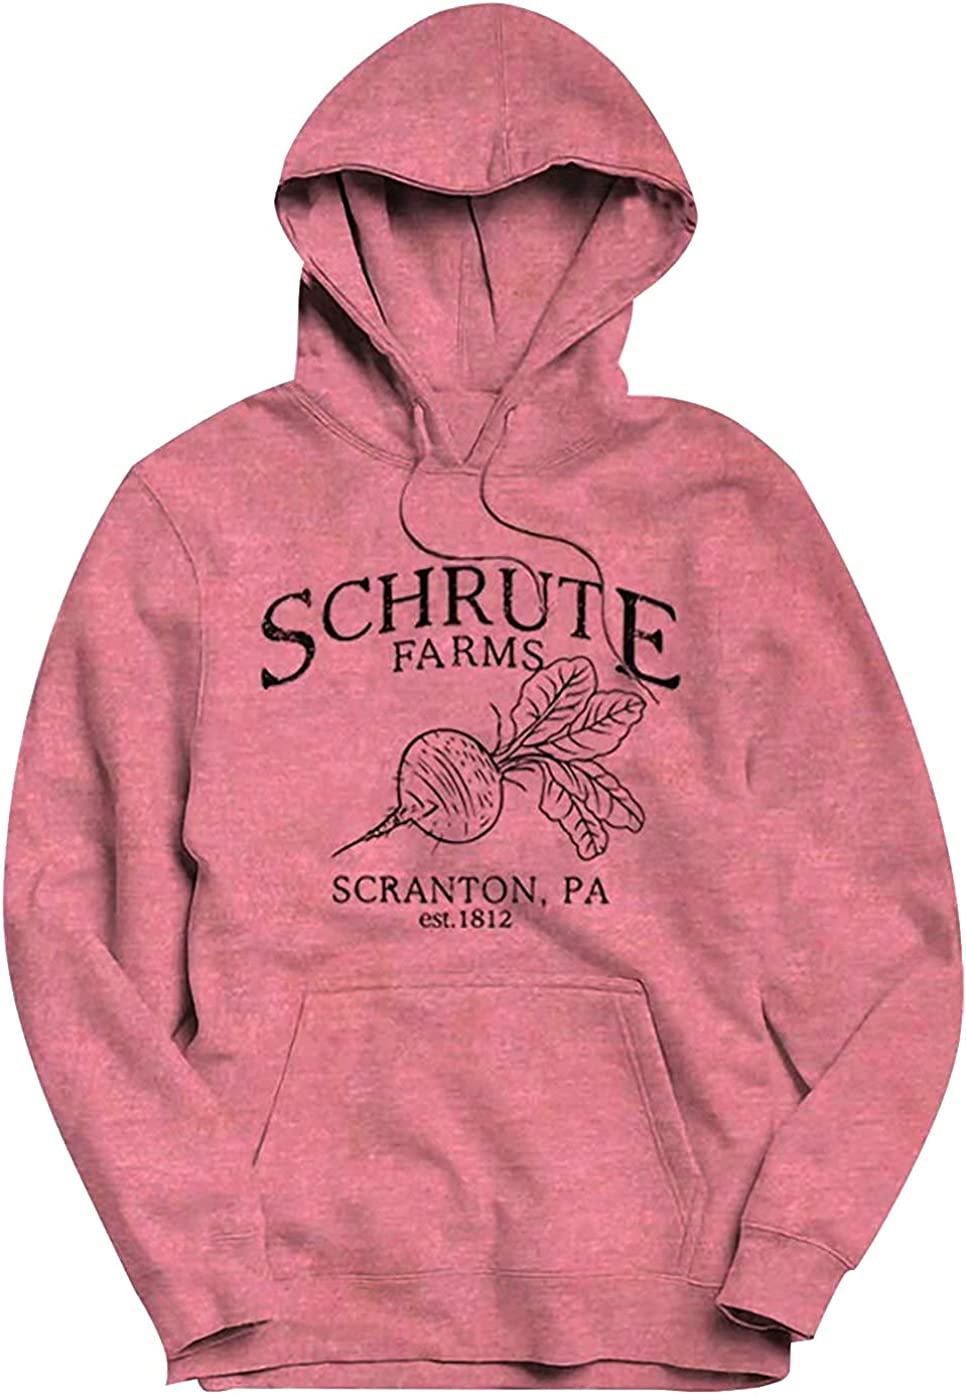 Schrute Farms Hooded Sweatshirt Women Beet Graphic Drawstring Lightweight Sweater Pullover Top The Office Fan